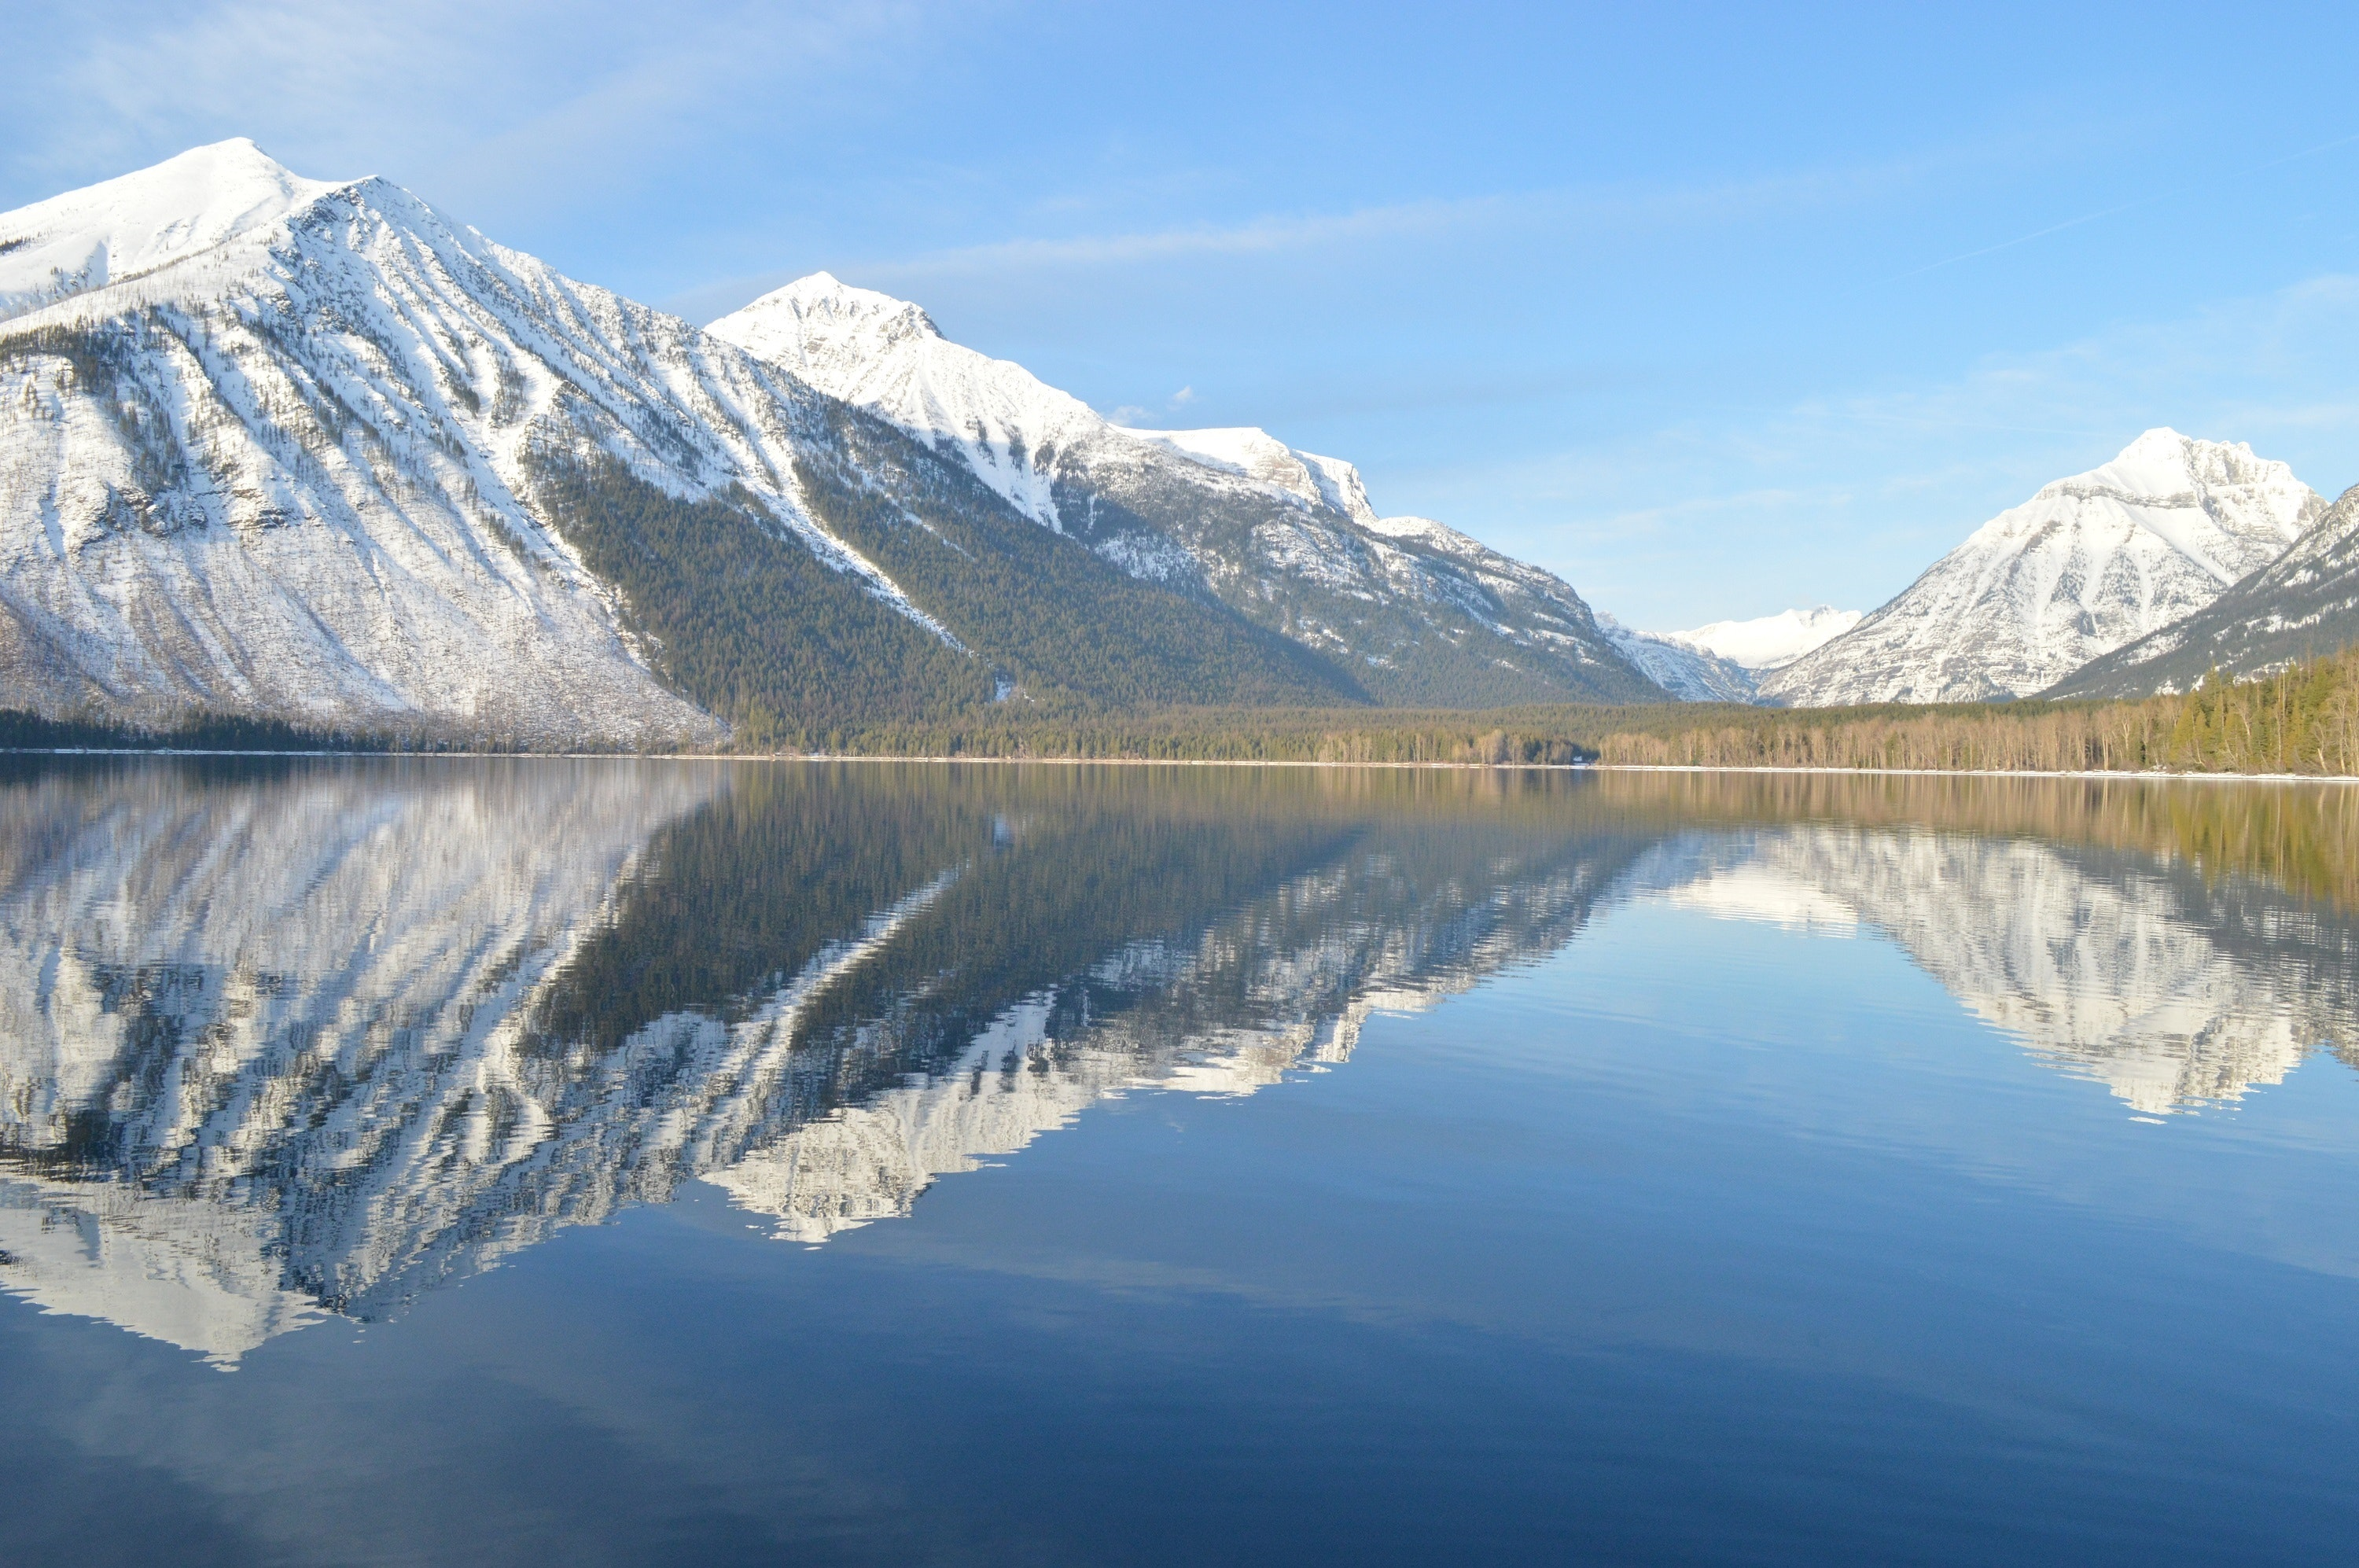 Reflection of mountains in lake against sky photo